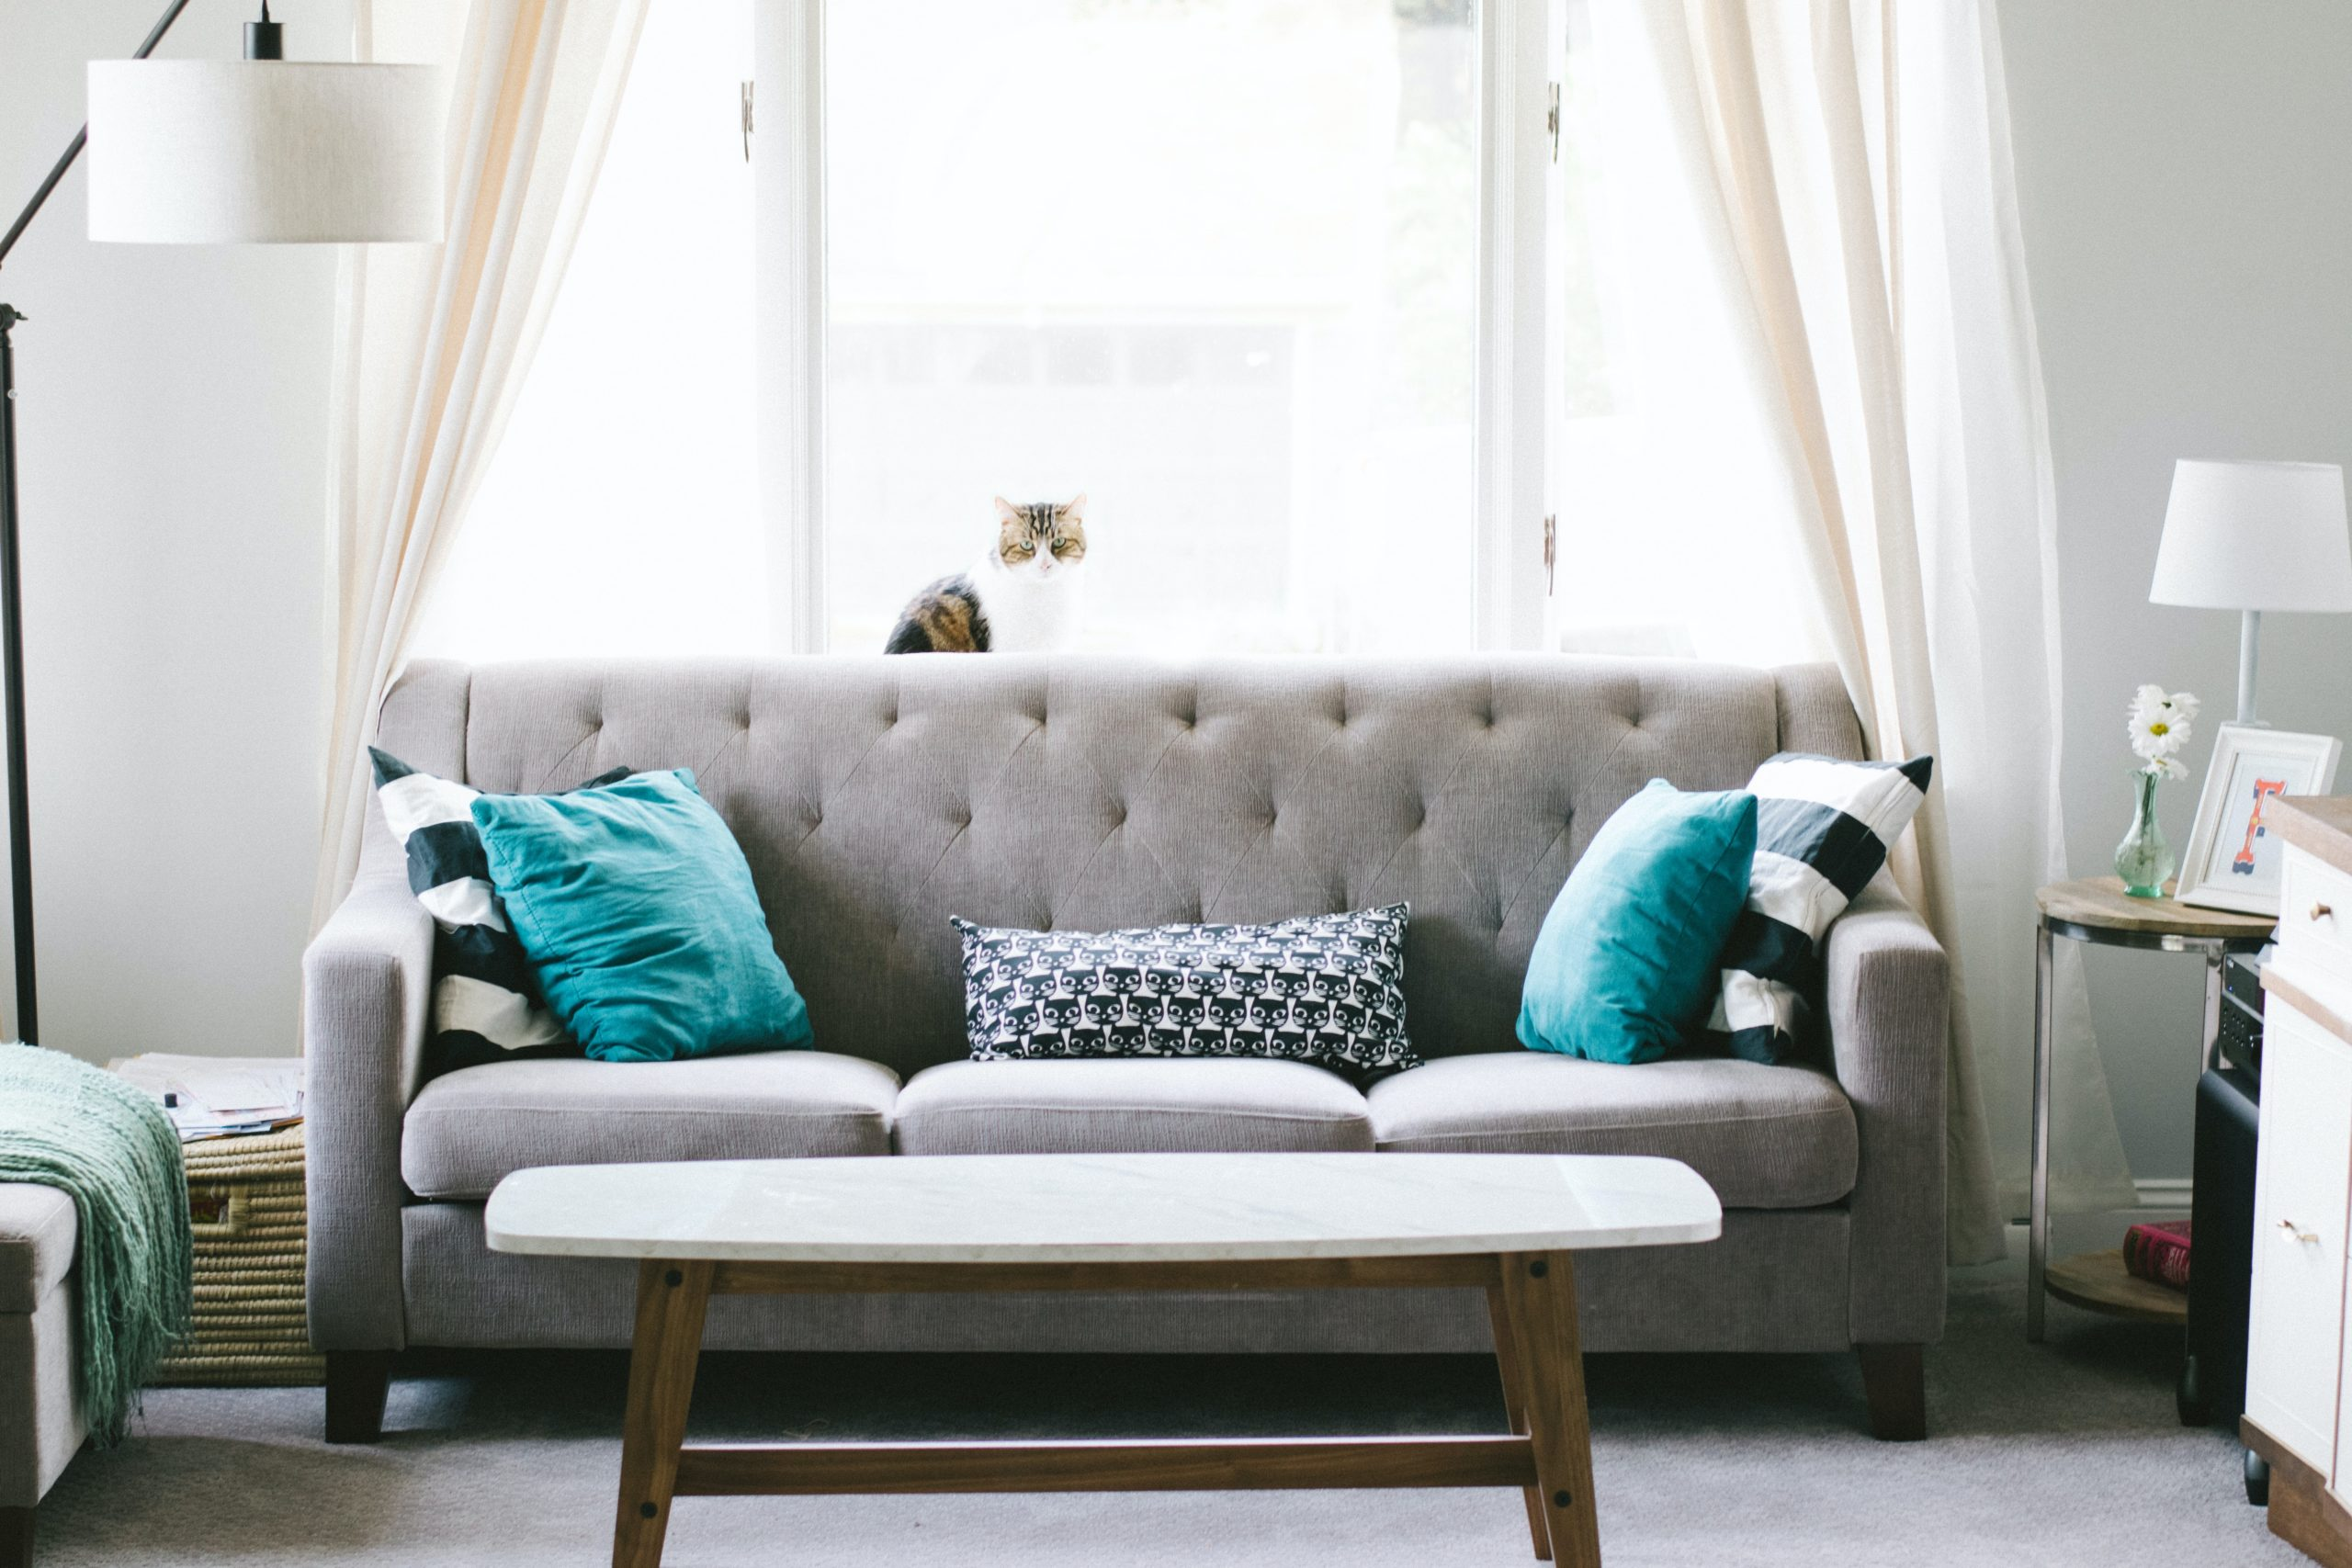 Couch with cross-stitched decorative pillows